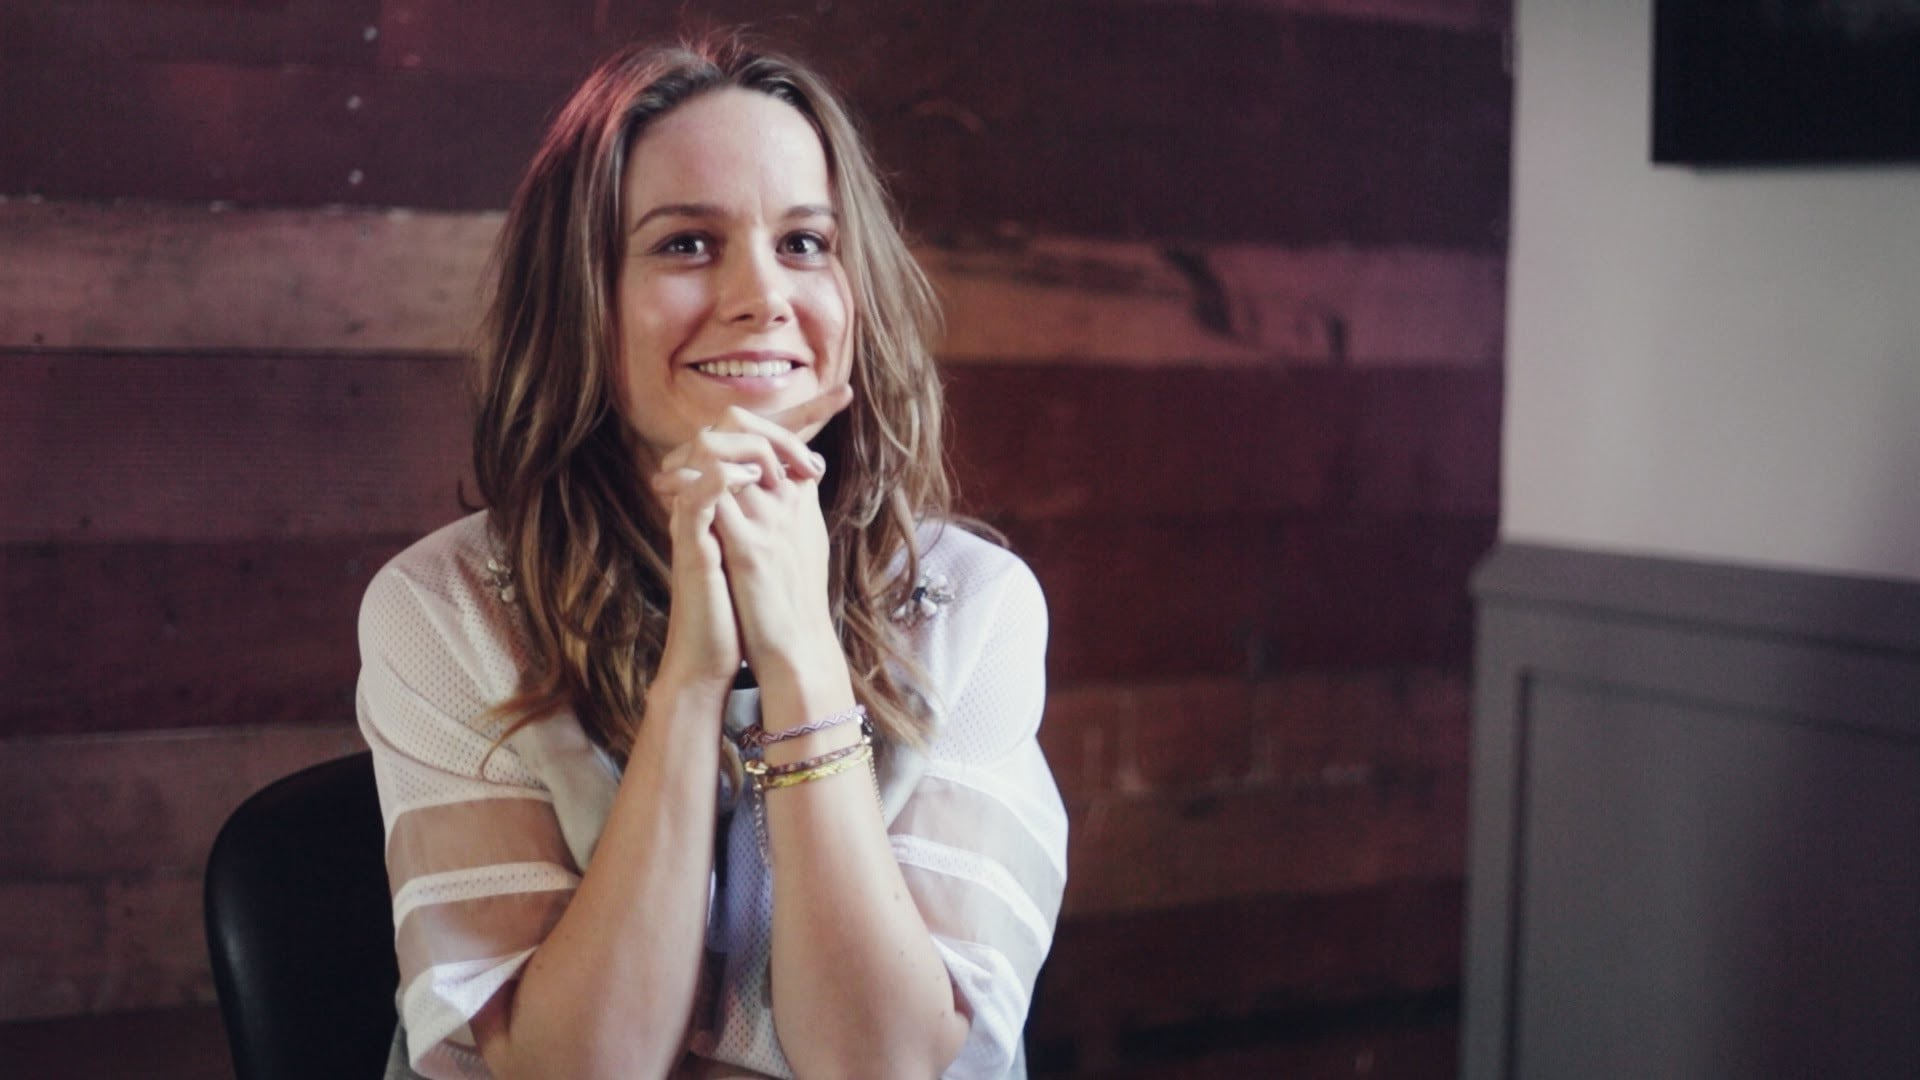 Wallpaper of funny Brie Larson for iPad